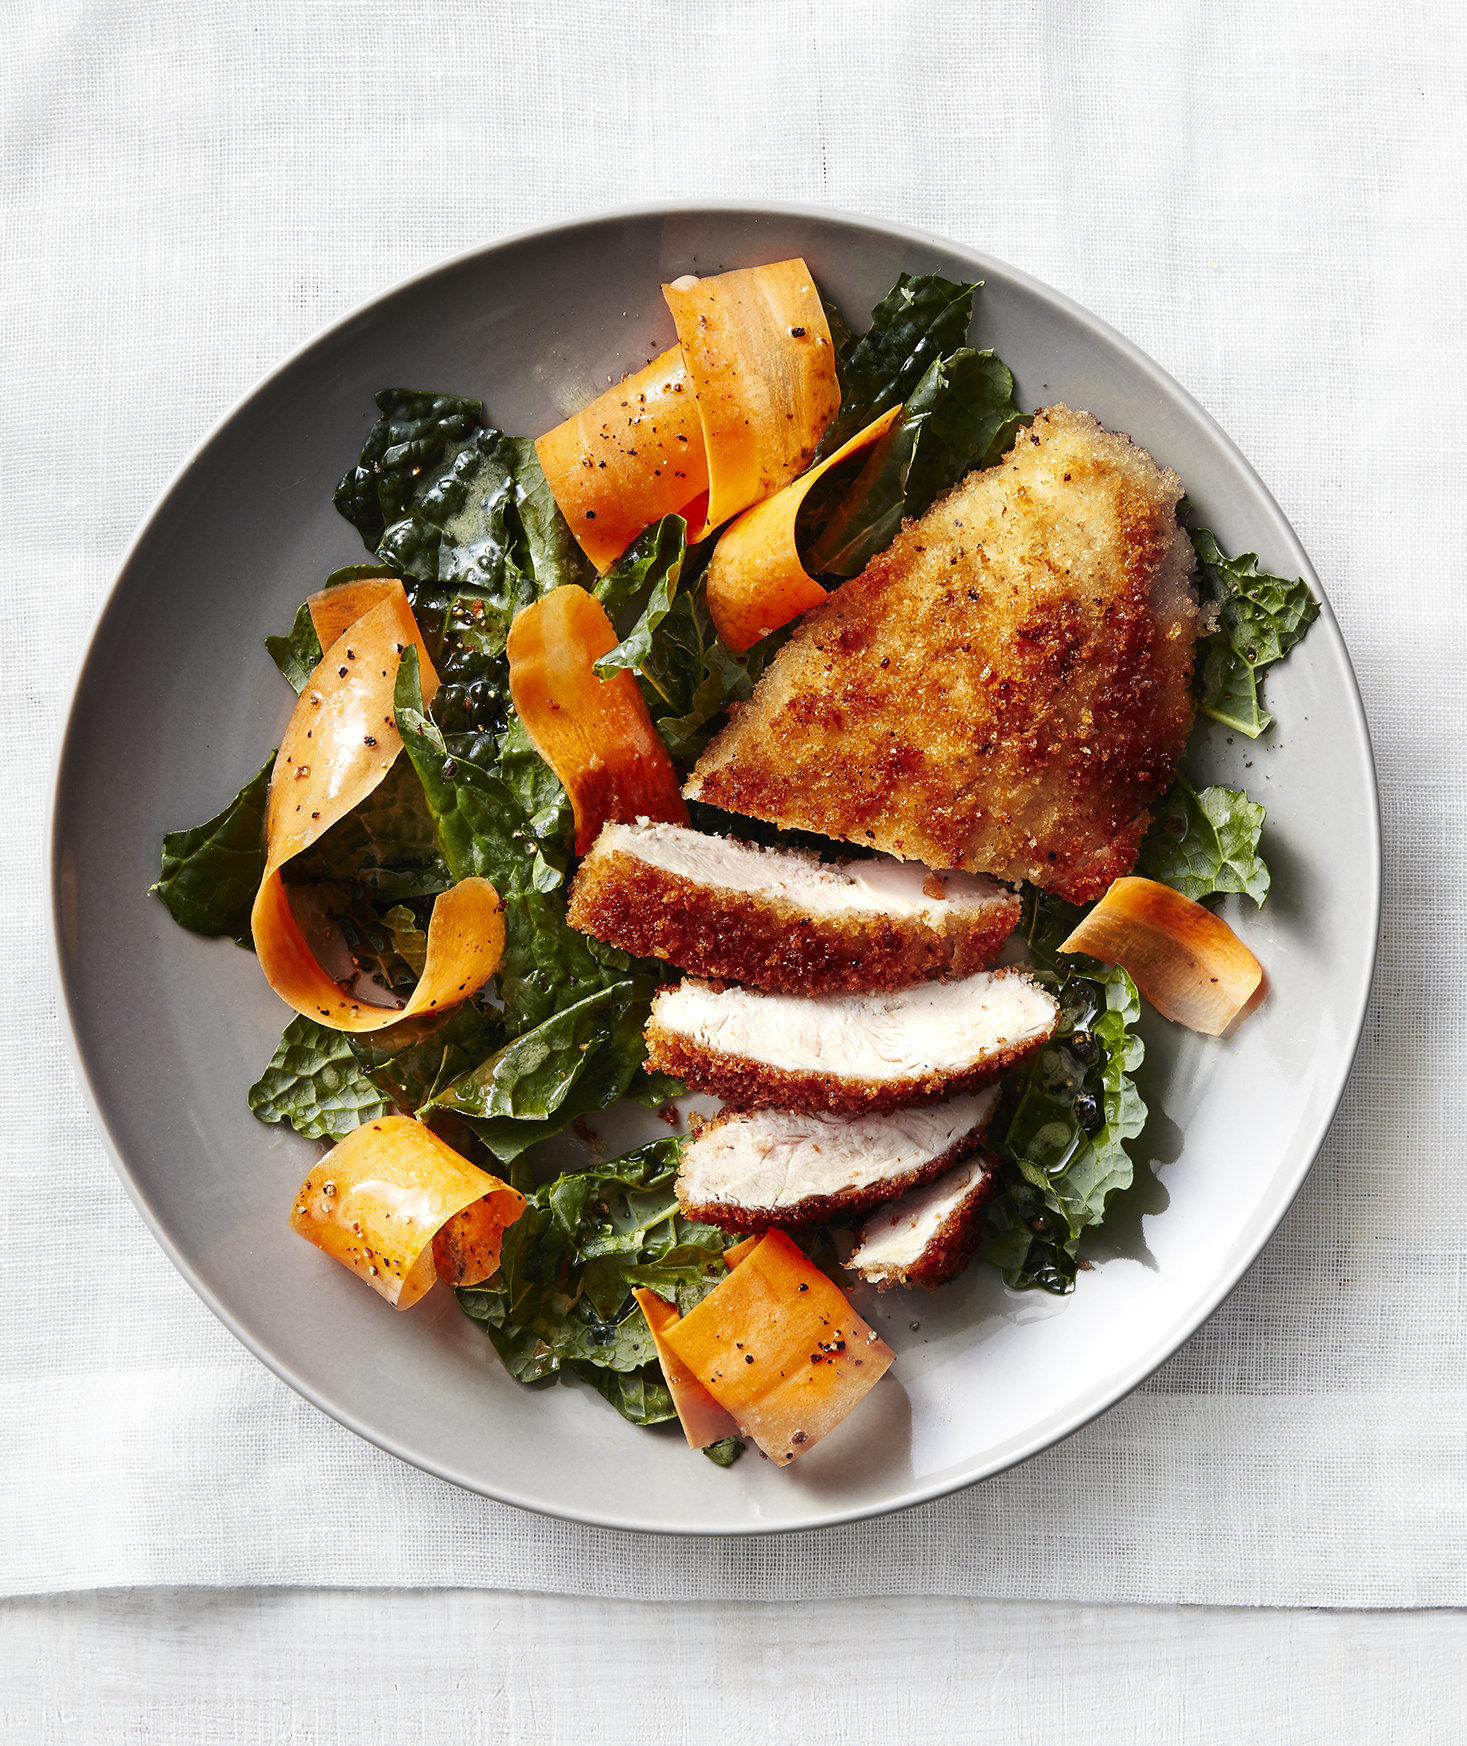 Crispy Chicken Cutlets with Kale Salad | Circles Of Gresilda